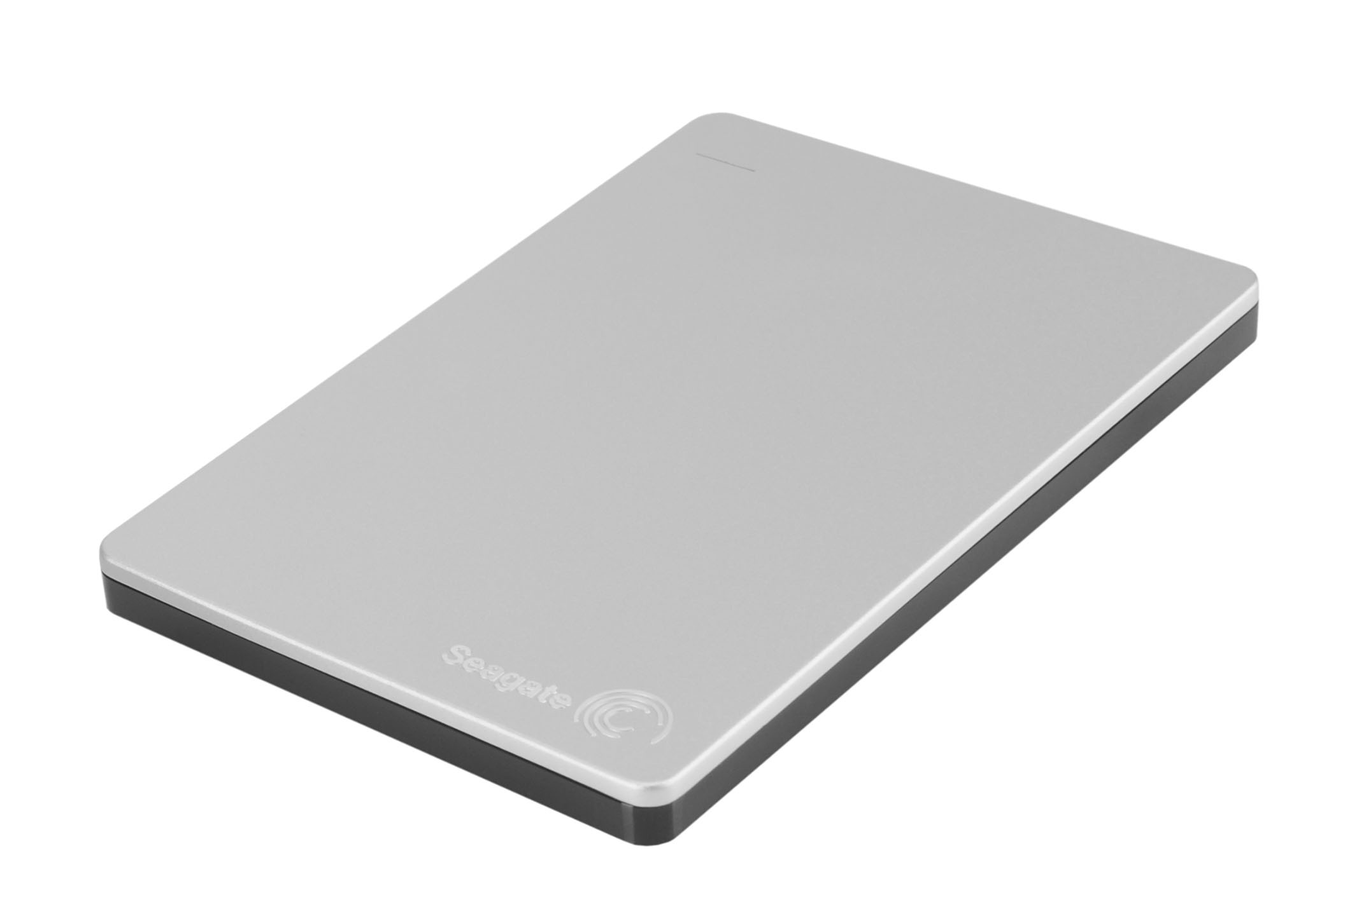 disque dur externe seagate 2 5 500gb slim pour mac usb 3. Black Bedroom Furniture Sets. Home Design Ideas